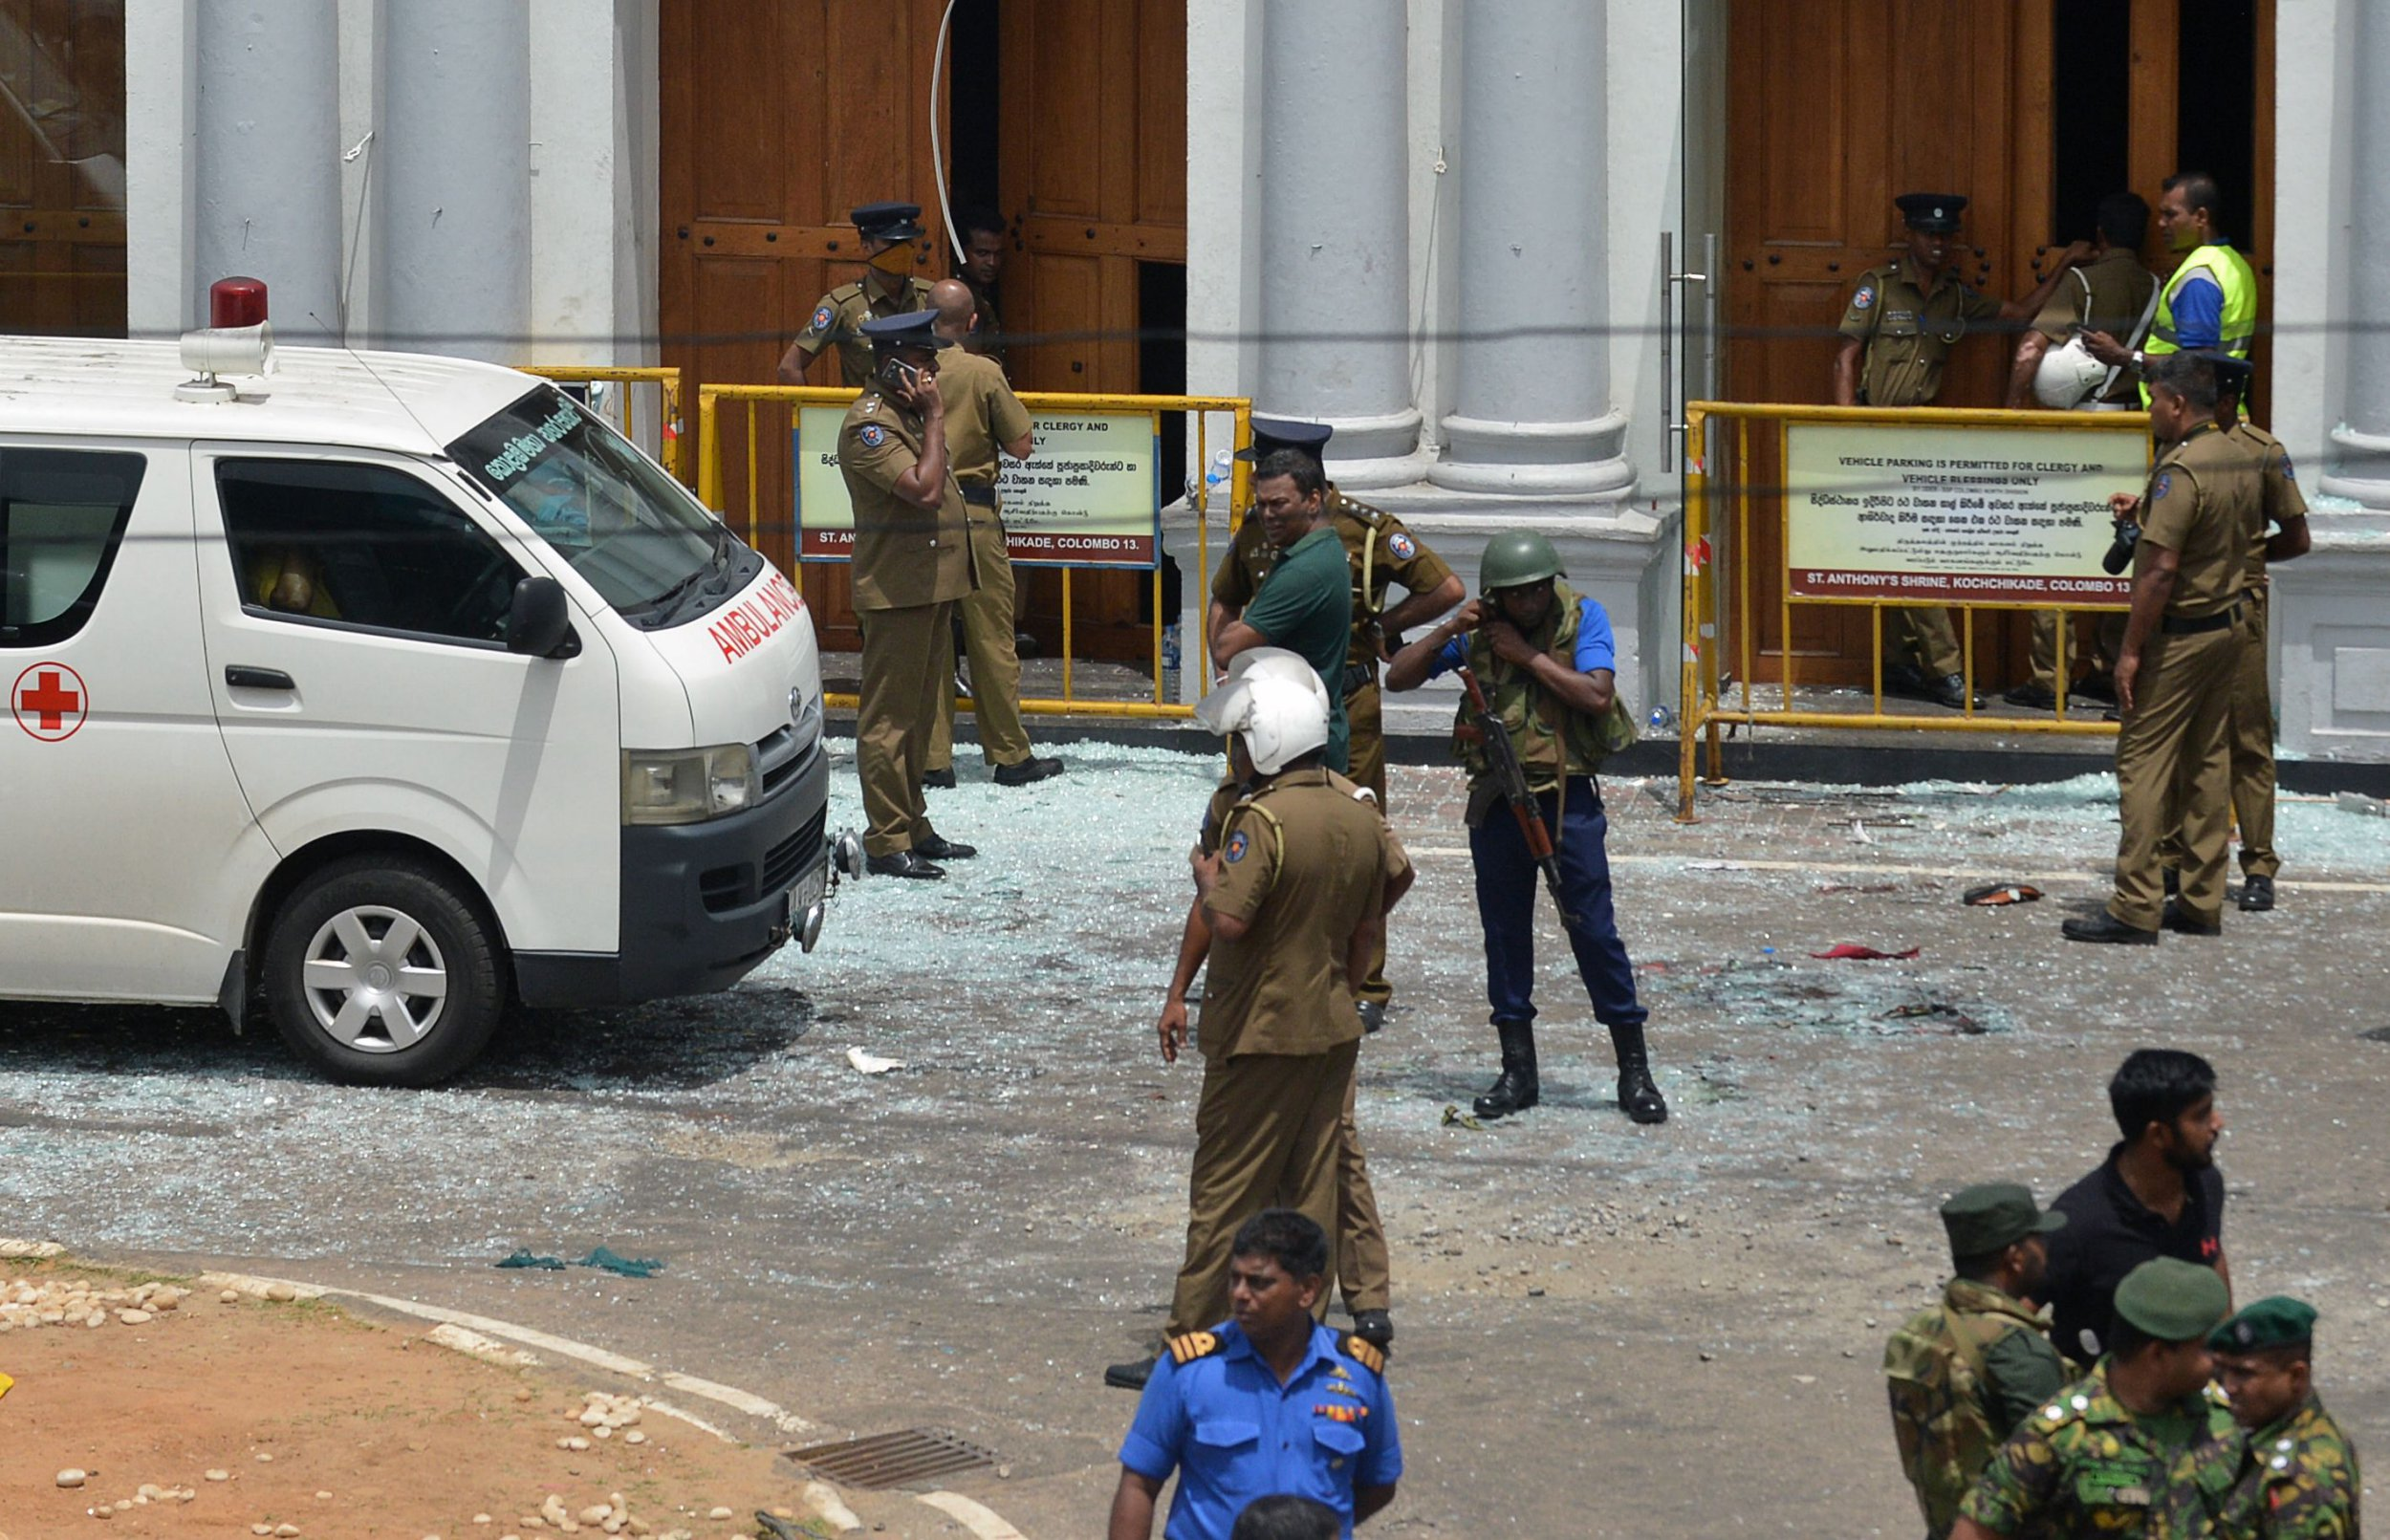 Sri Lankan confidence crew mount subsequent to an ambulance outward St. Anthony's Shrine in Kochchikade in Colombo on Apr 21, 2019 following a blast during a church. - At slightest 42 people were killed Apr 21 in a fibre of blasts during hotels and churches in Sri Lanka as worshippers attended Easter services, a military central told AFP. (Photo by ISHARA S. KODIKARA / AFP)ISHARA S. KODIKARA/AFP/Getty Images